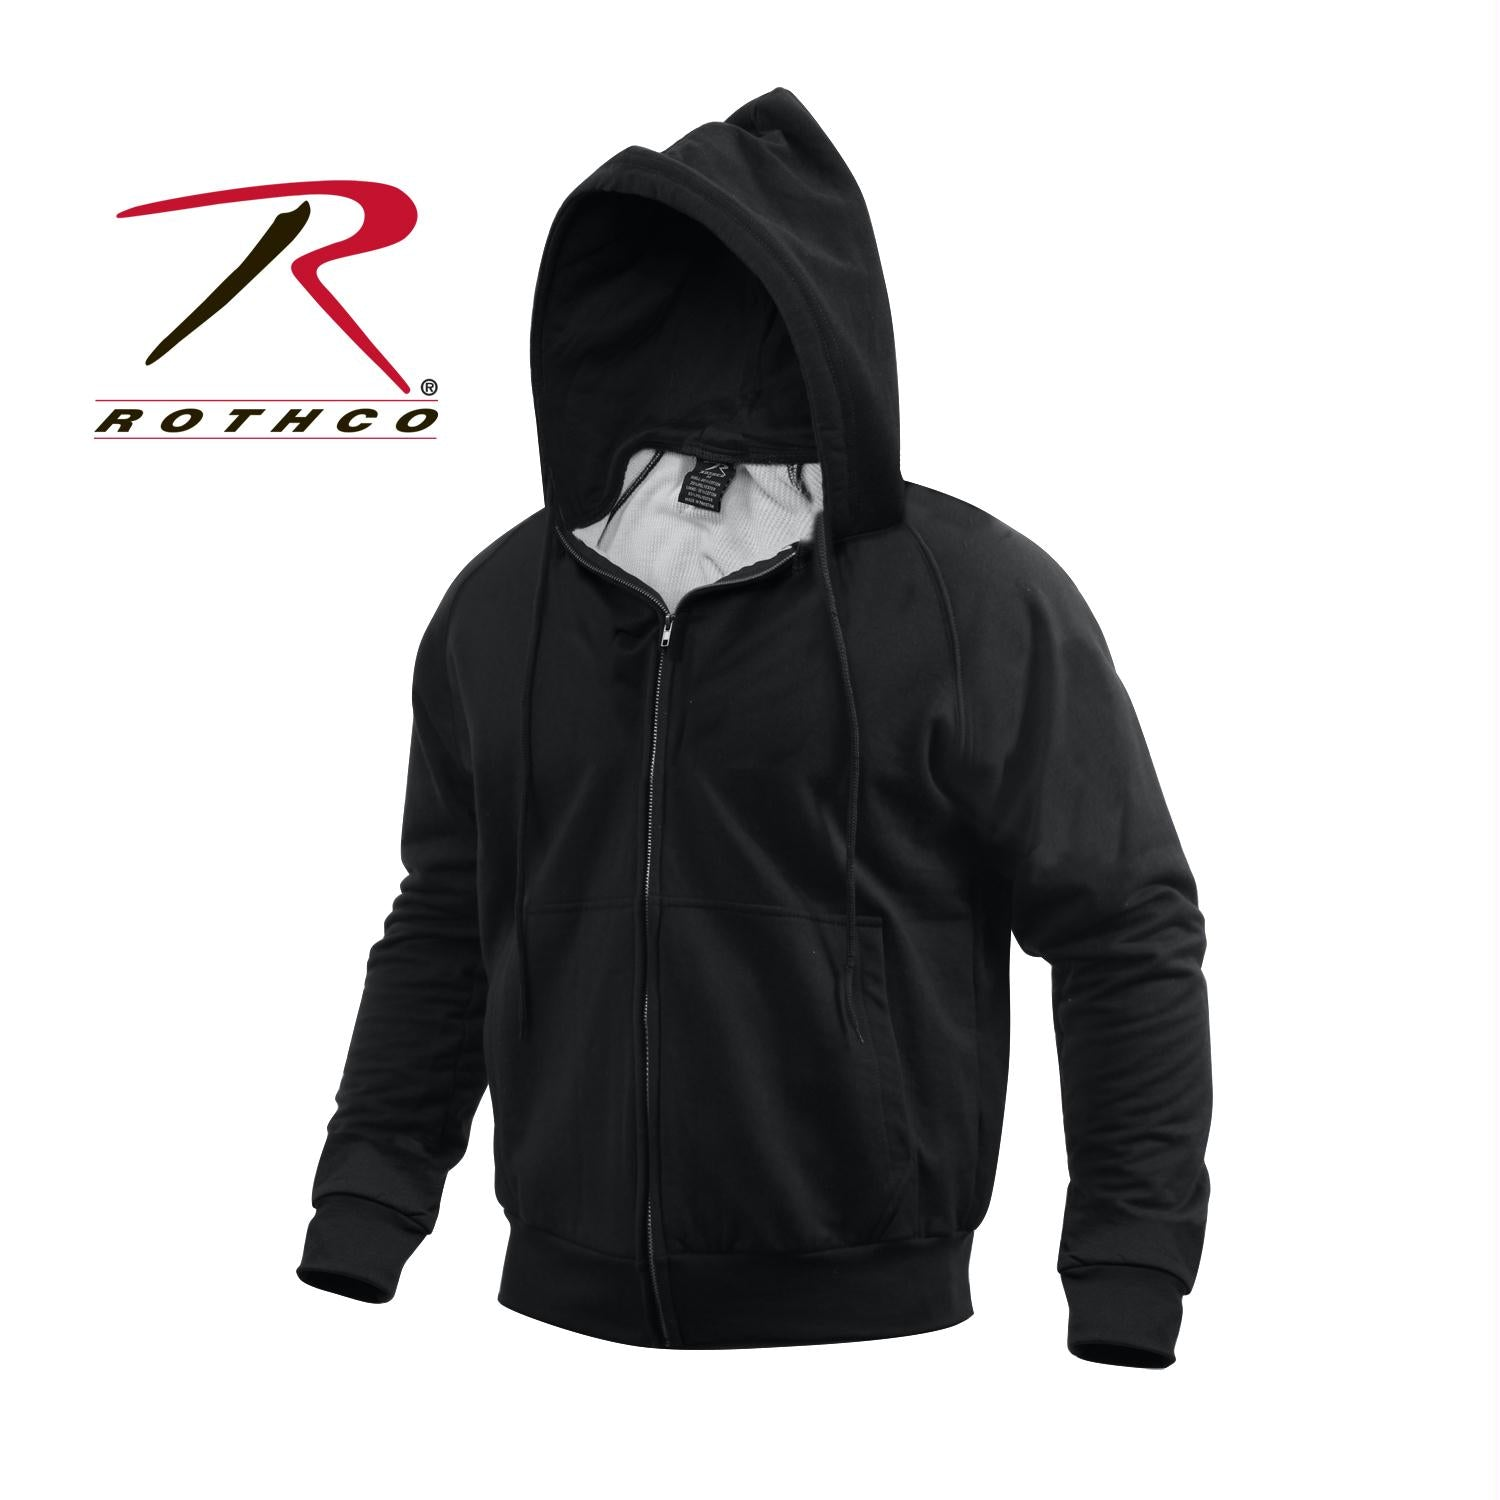 Rothco Thermal Lined Hooded Sweatshirt - Black / L